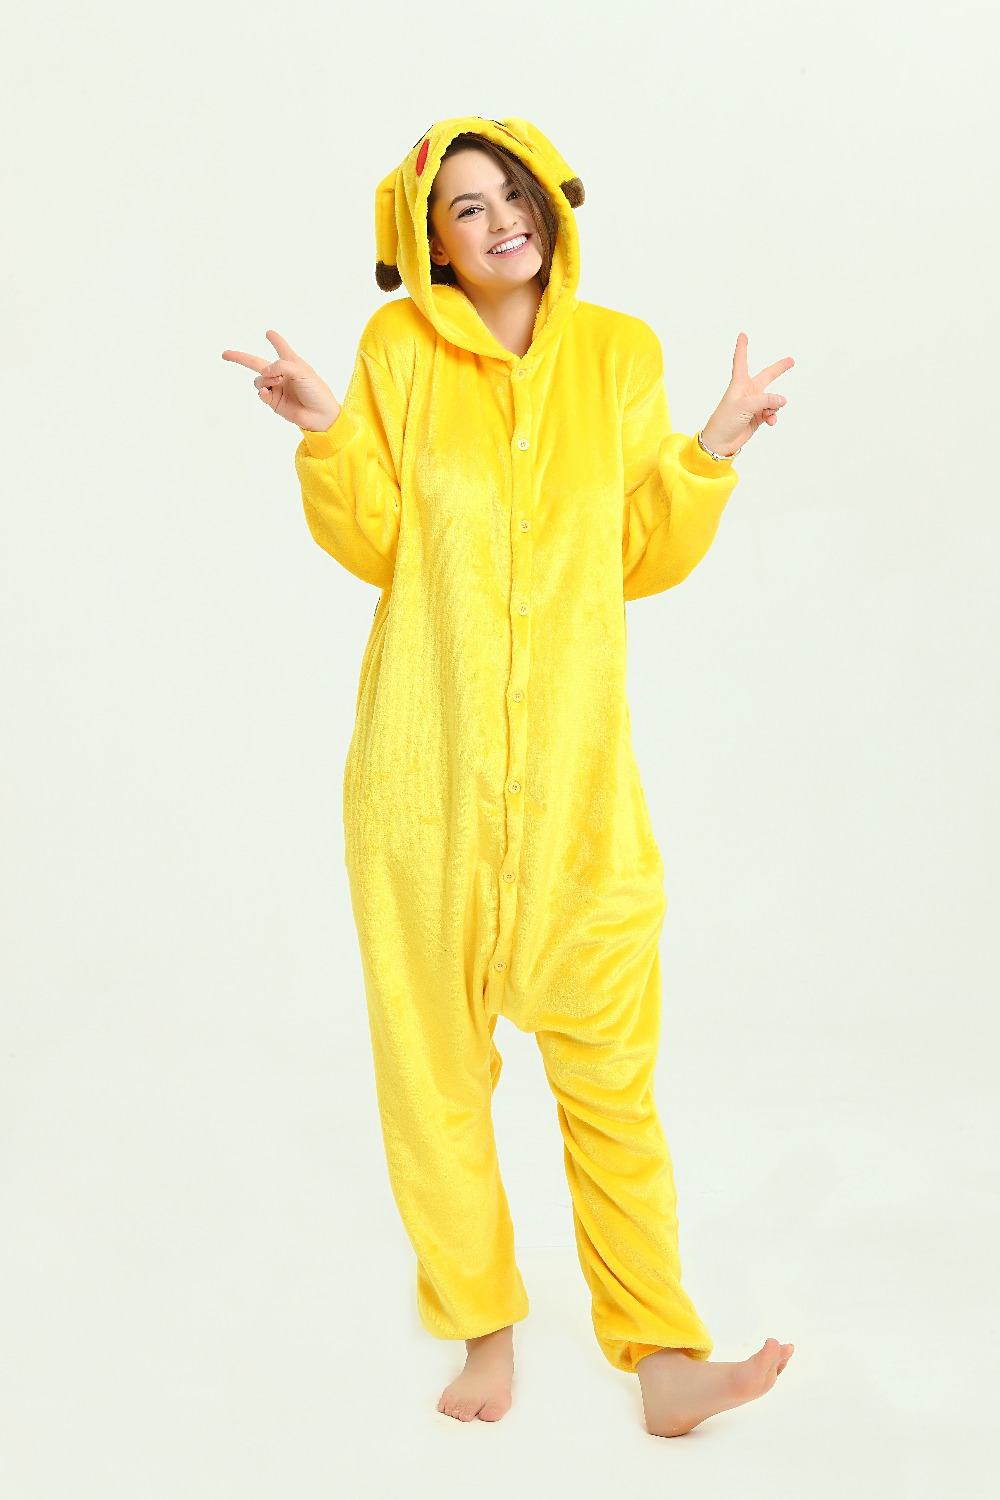 Pikachu Animal Pajamas Unisex Adult Suits Flannel Pitster X4m Wiring Pit Bikes Thumpertalk 11111 01 03 04 05 06 45 Dx2 6933 6941 6945 6948 Tips